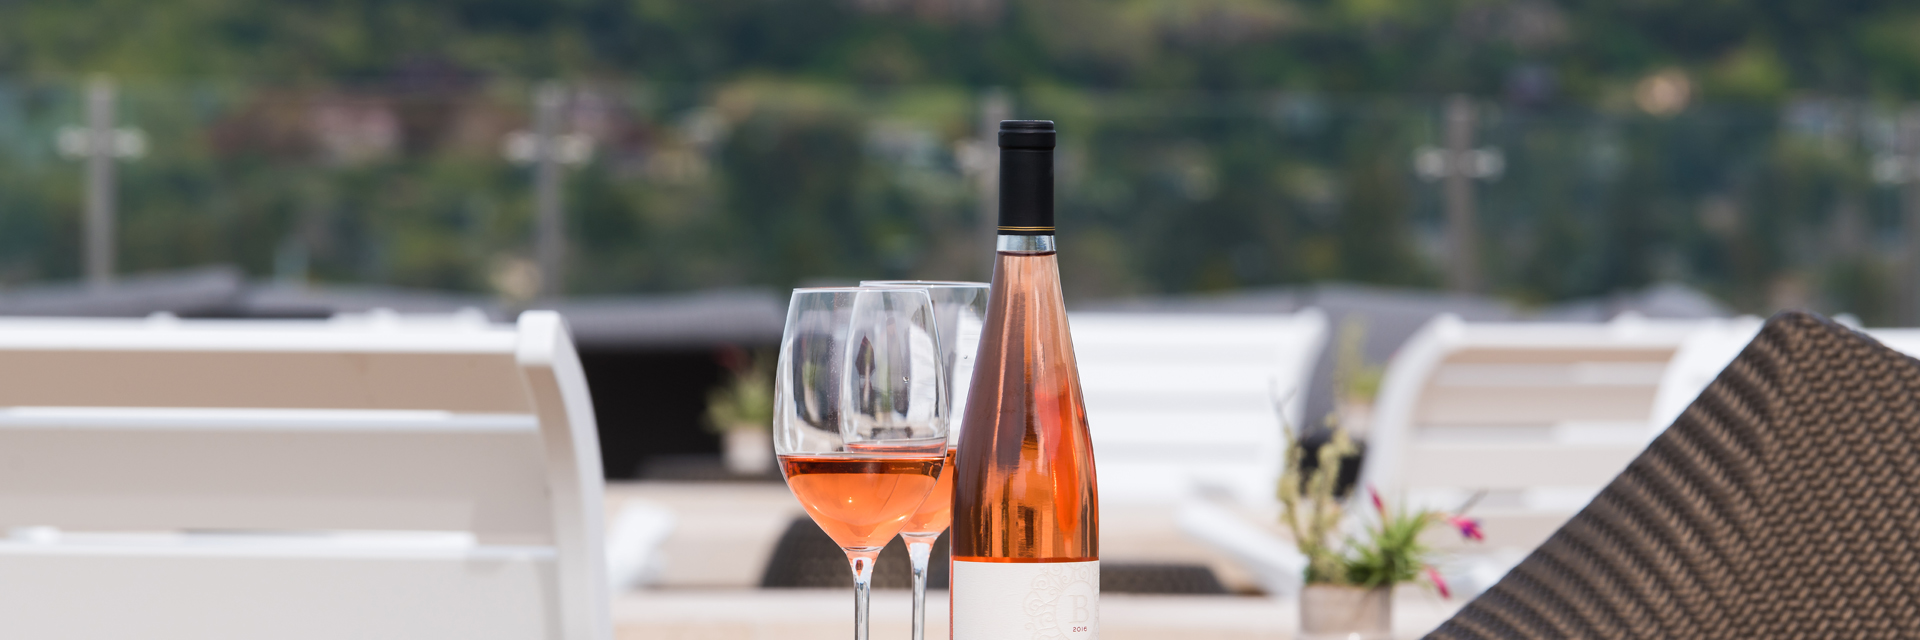 A bottle of rosé and two glasses await on an open-air rooftop, with white chairs and greenery in the background